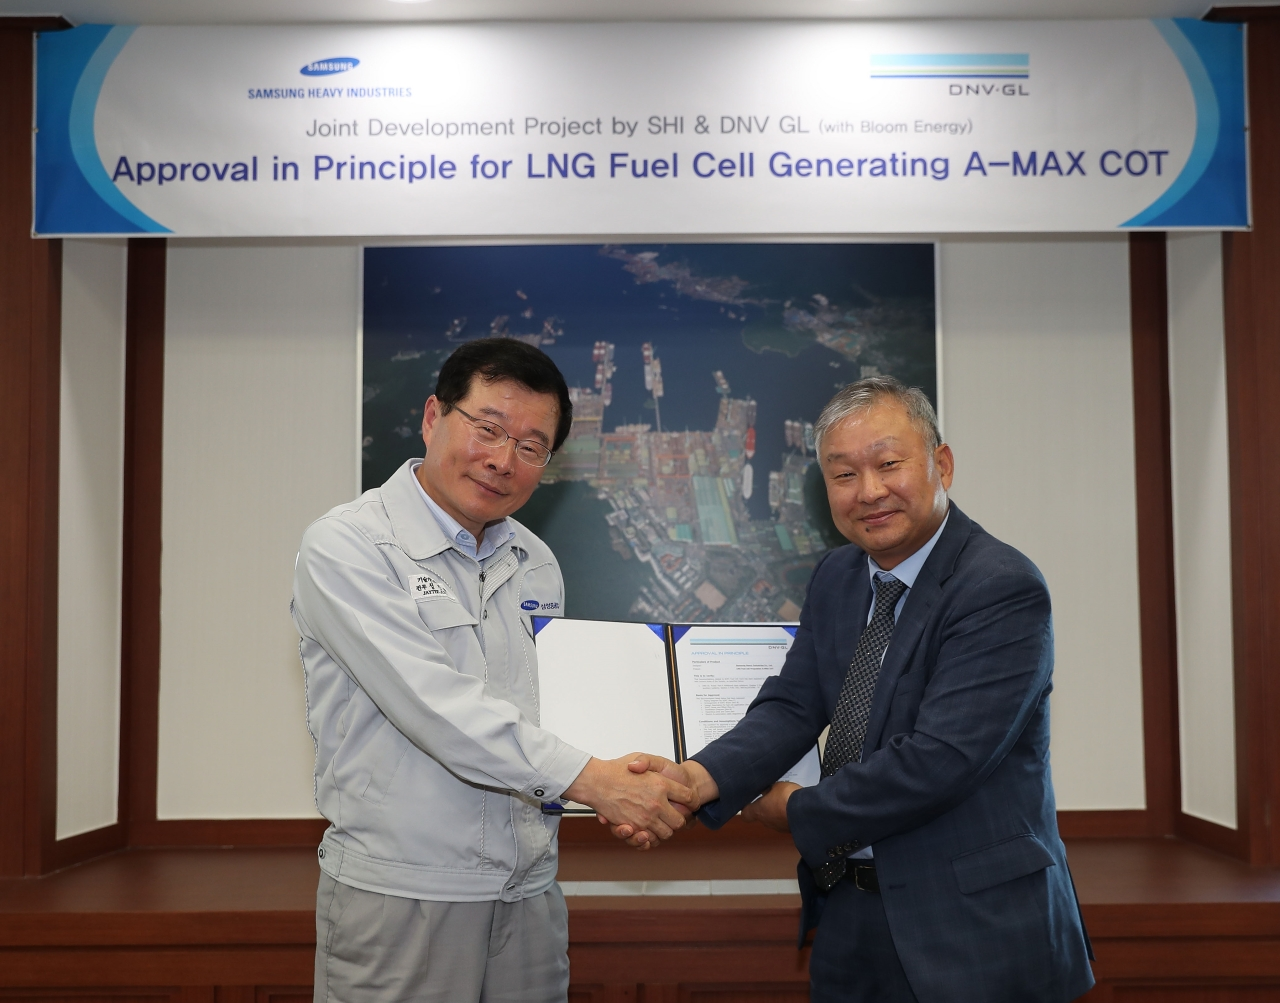 Samsung Heavy Executive Vice President Jung Jin-taek (left) and DNV GL regional business development manager Lee Hwa-lyong (SHI)